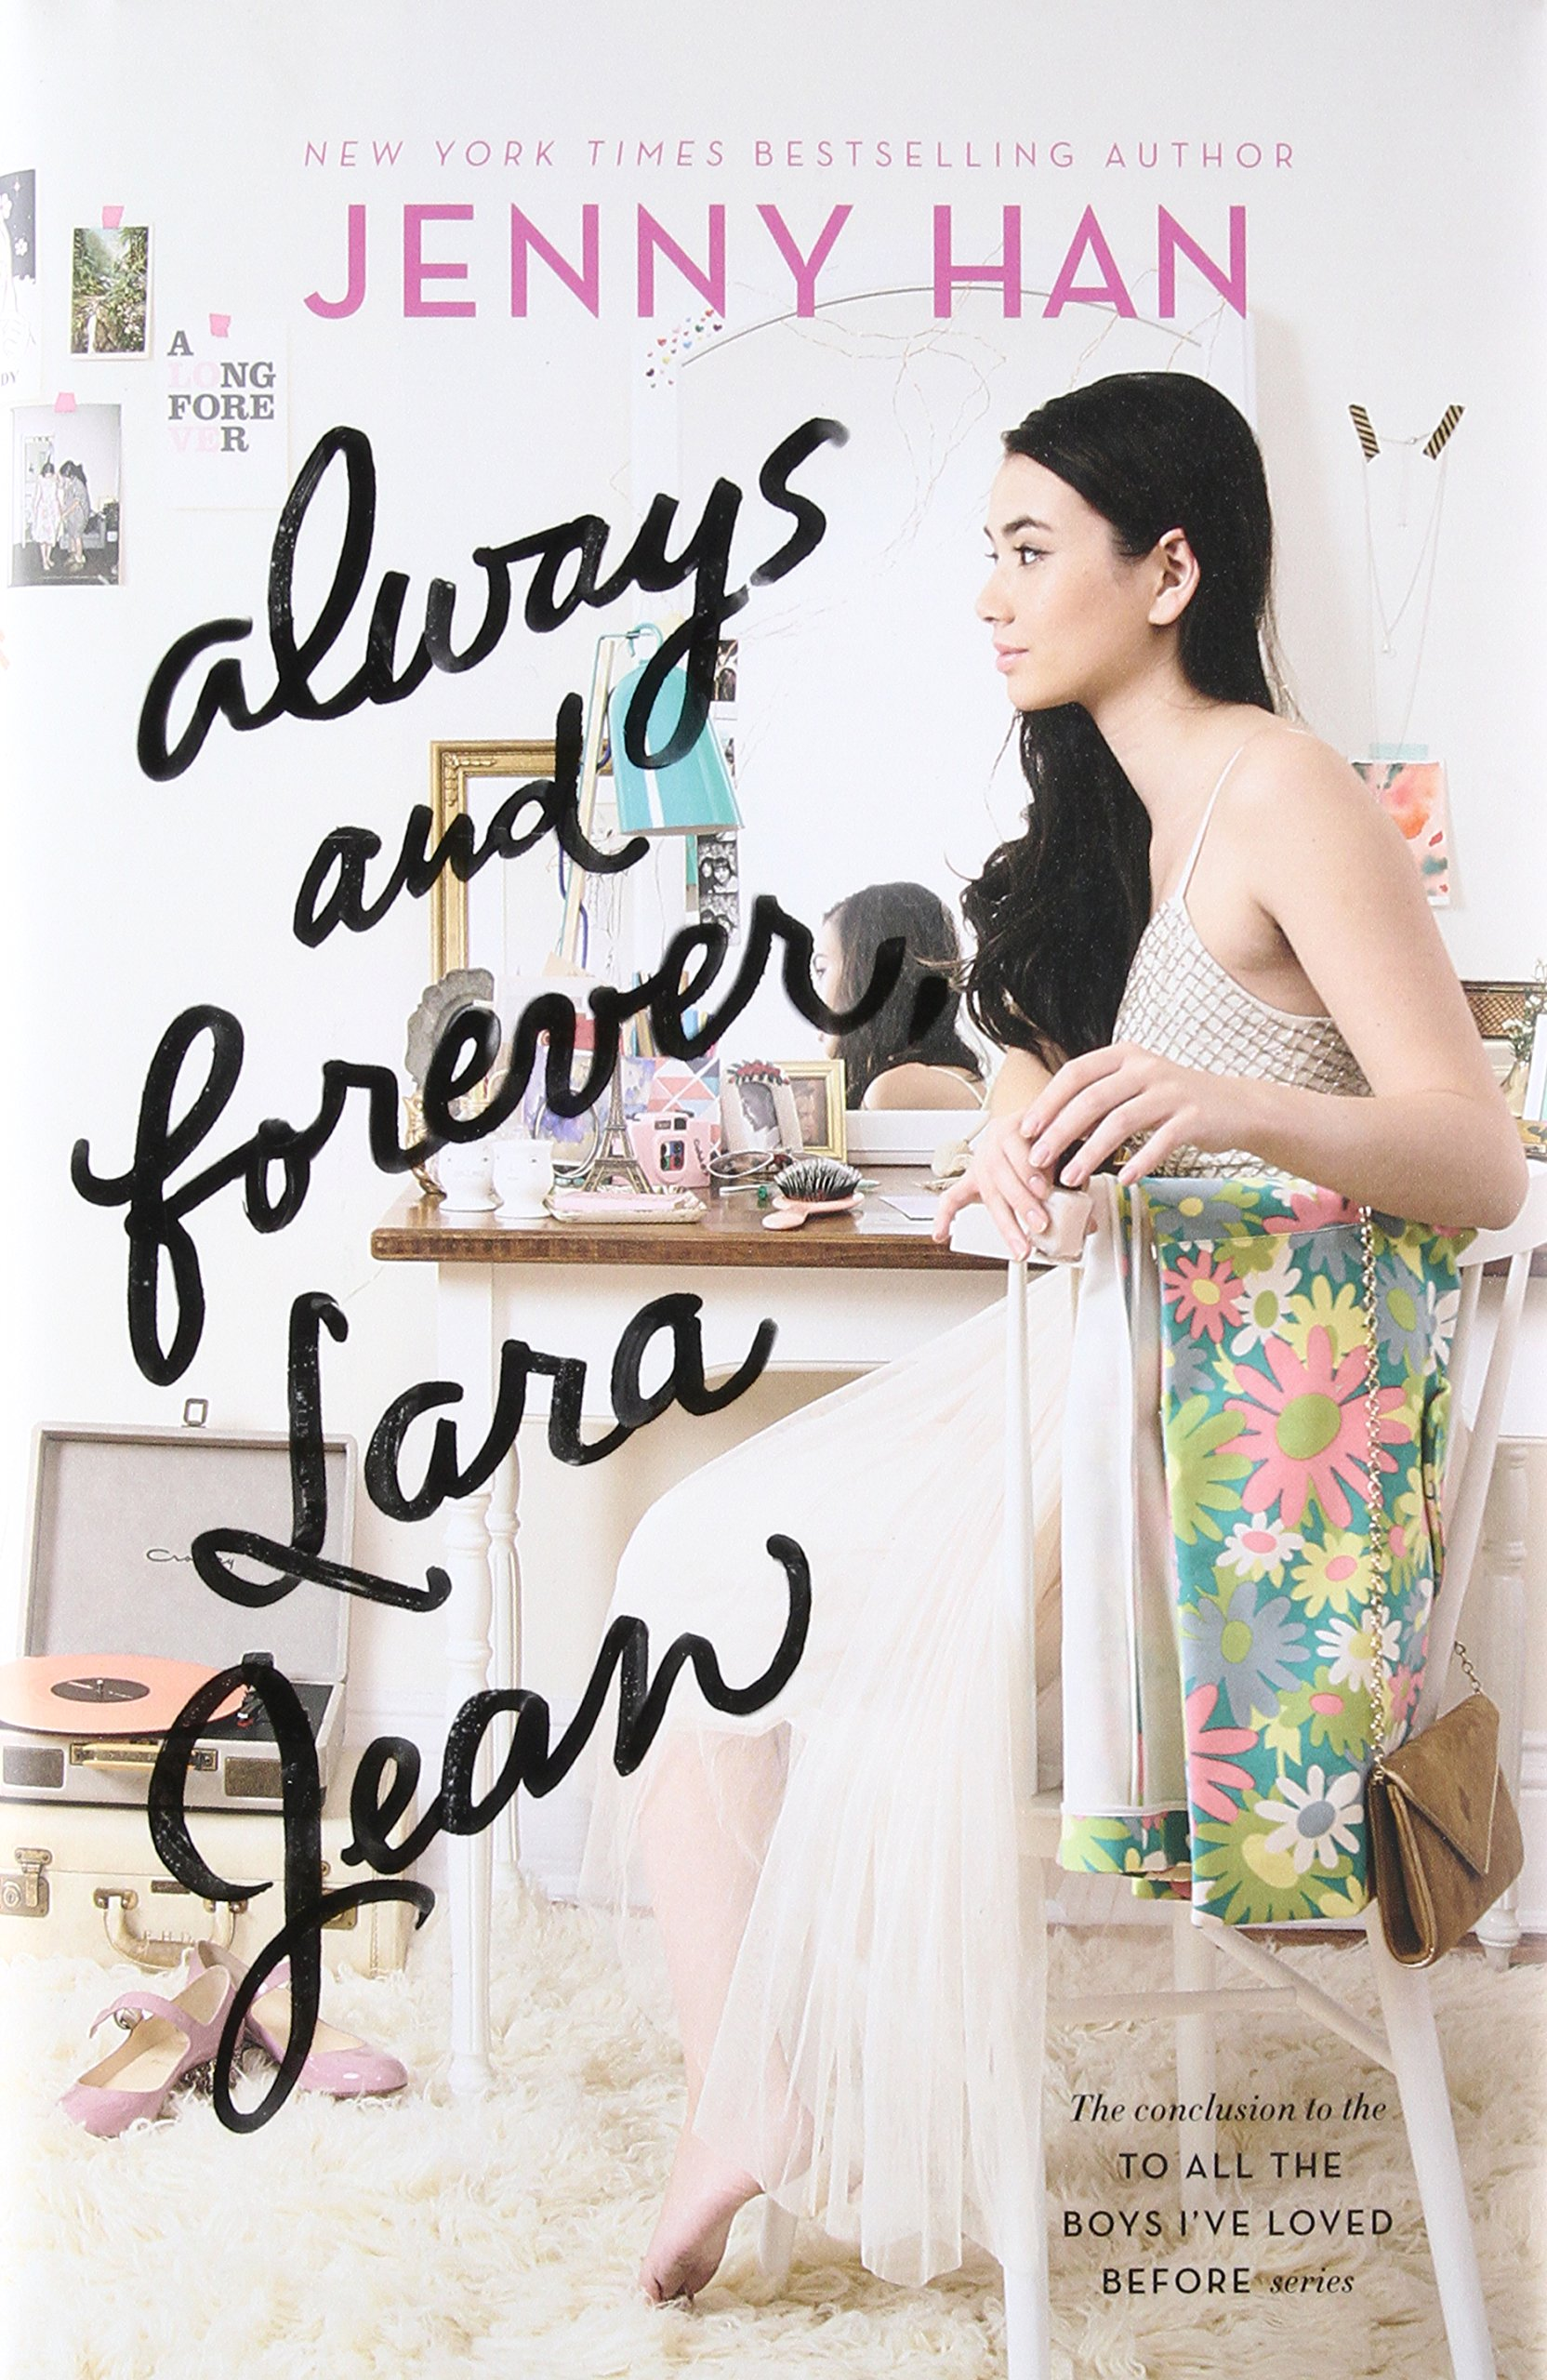 Always and Forever, Lara Jean, Volume 3 To All the Boys I've Loved Before:  Amazon.co.uk: Han, Jenny: Books